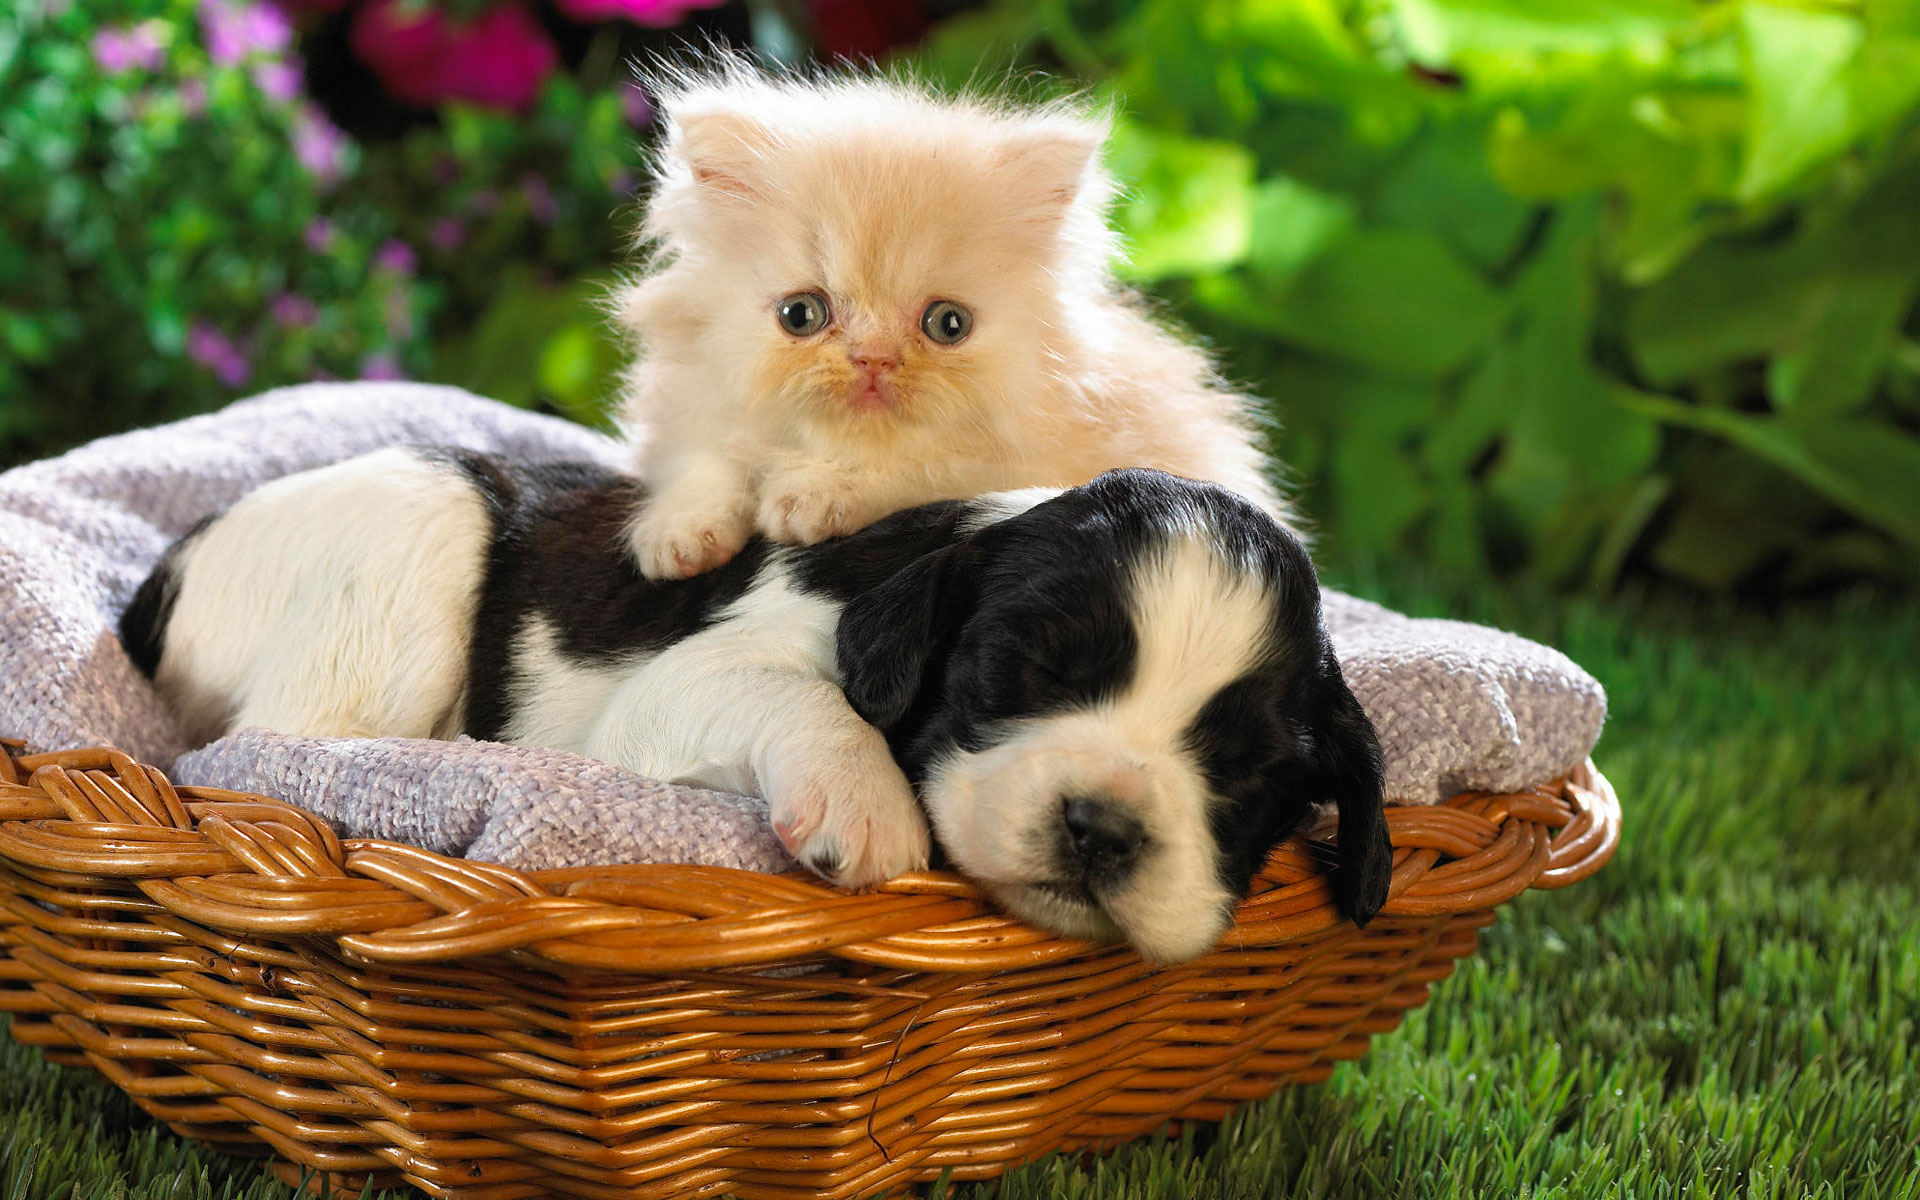 Cute Basket Buddies